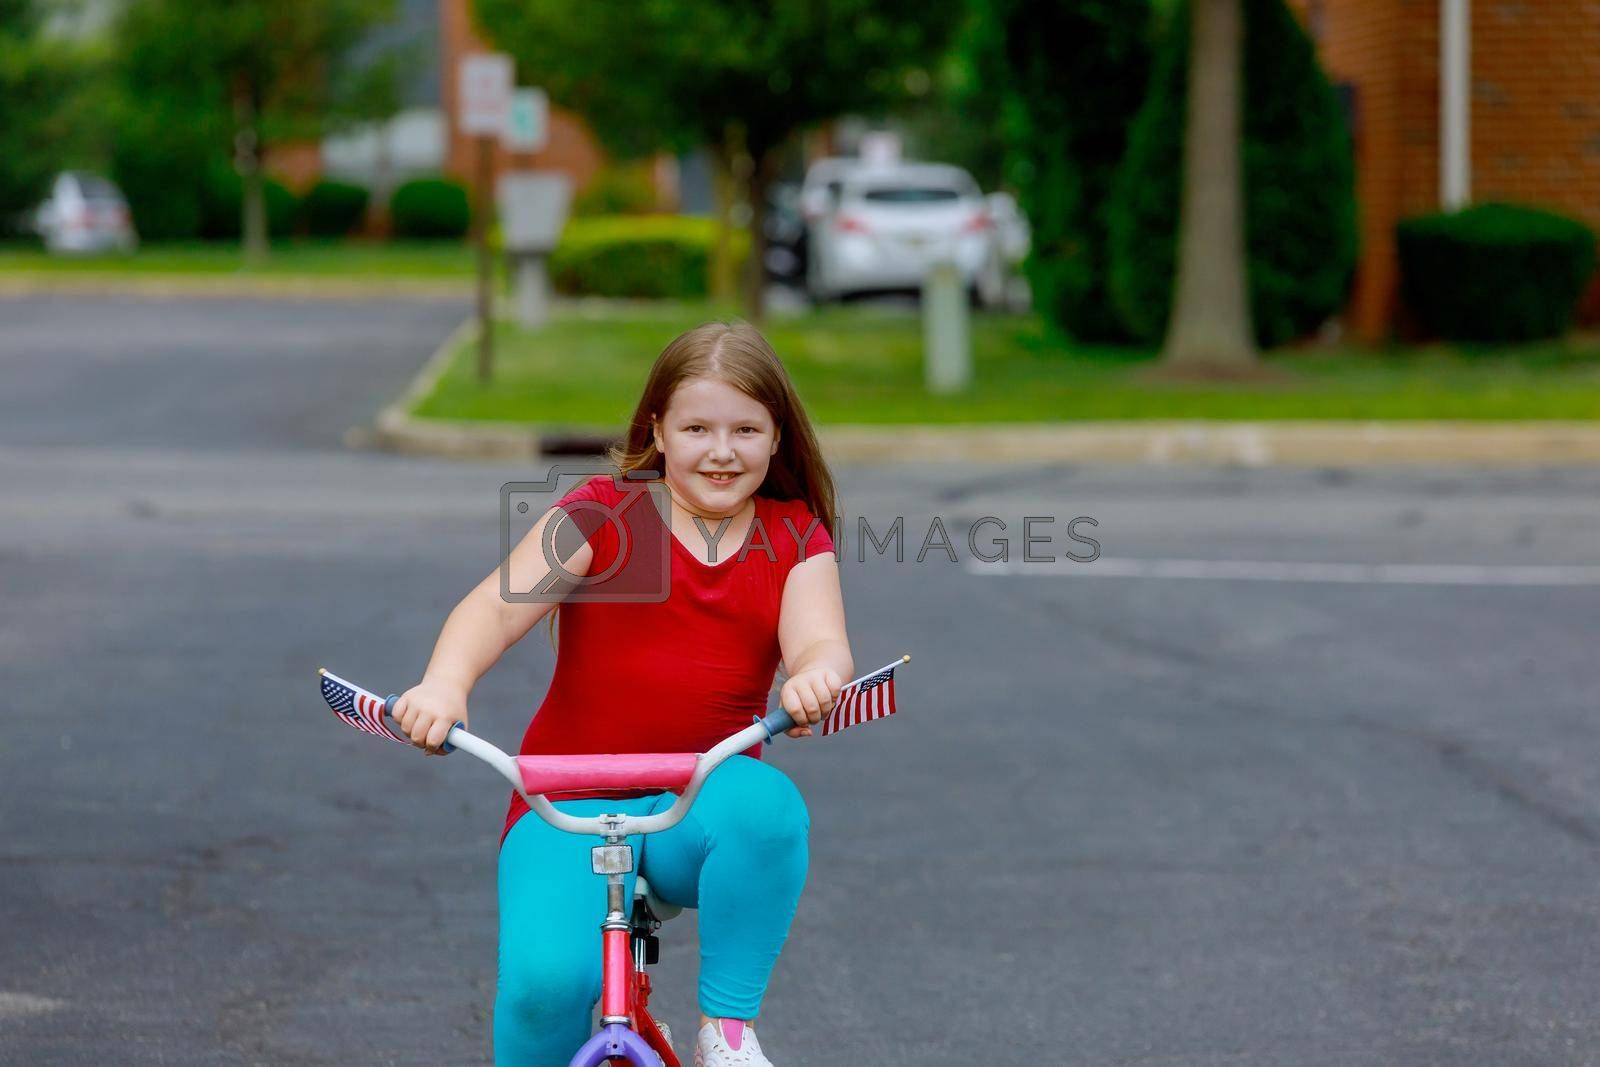 Smiling little girl in the summer clothes riding bicycle at the park on a city